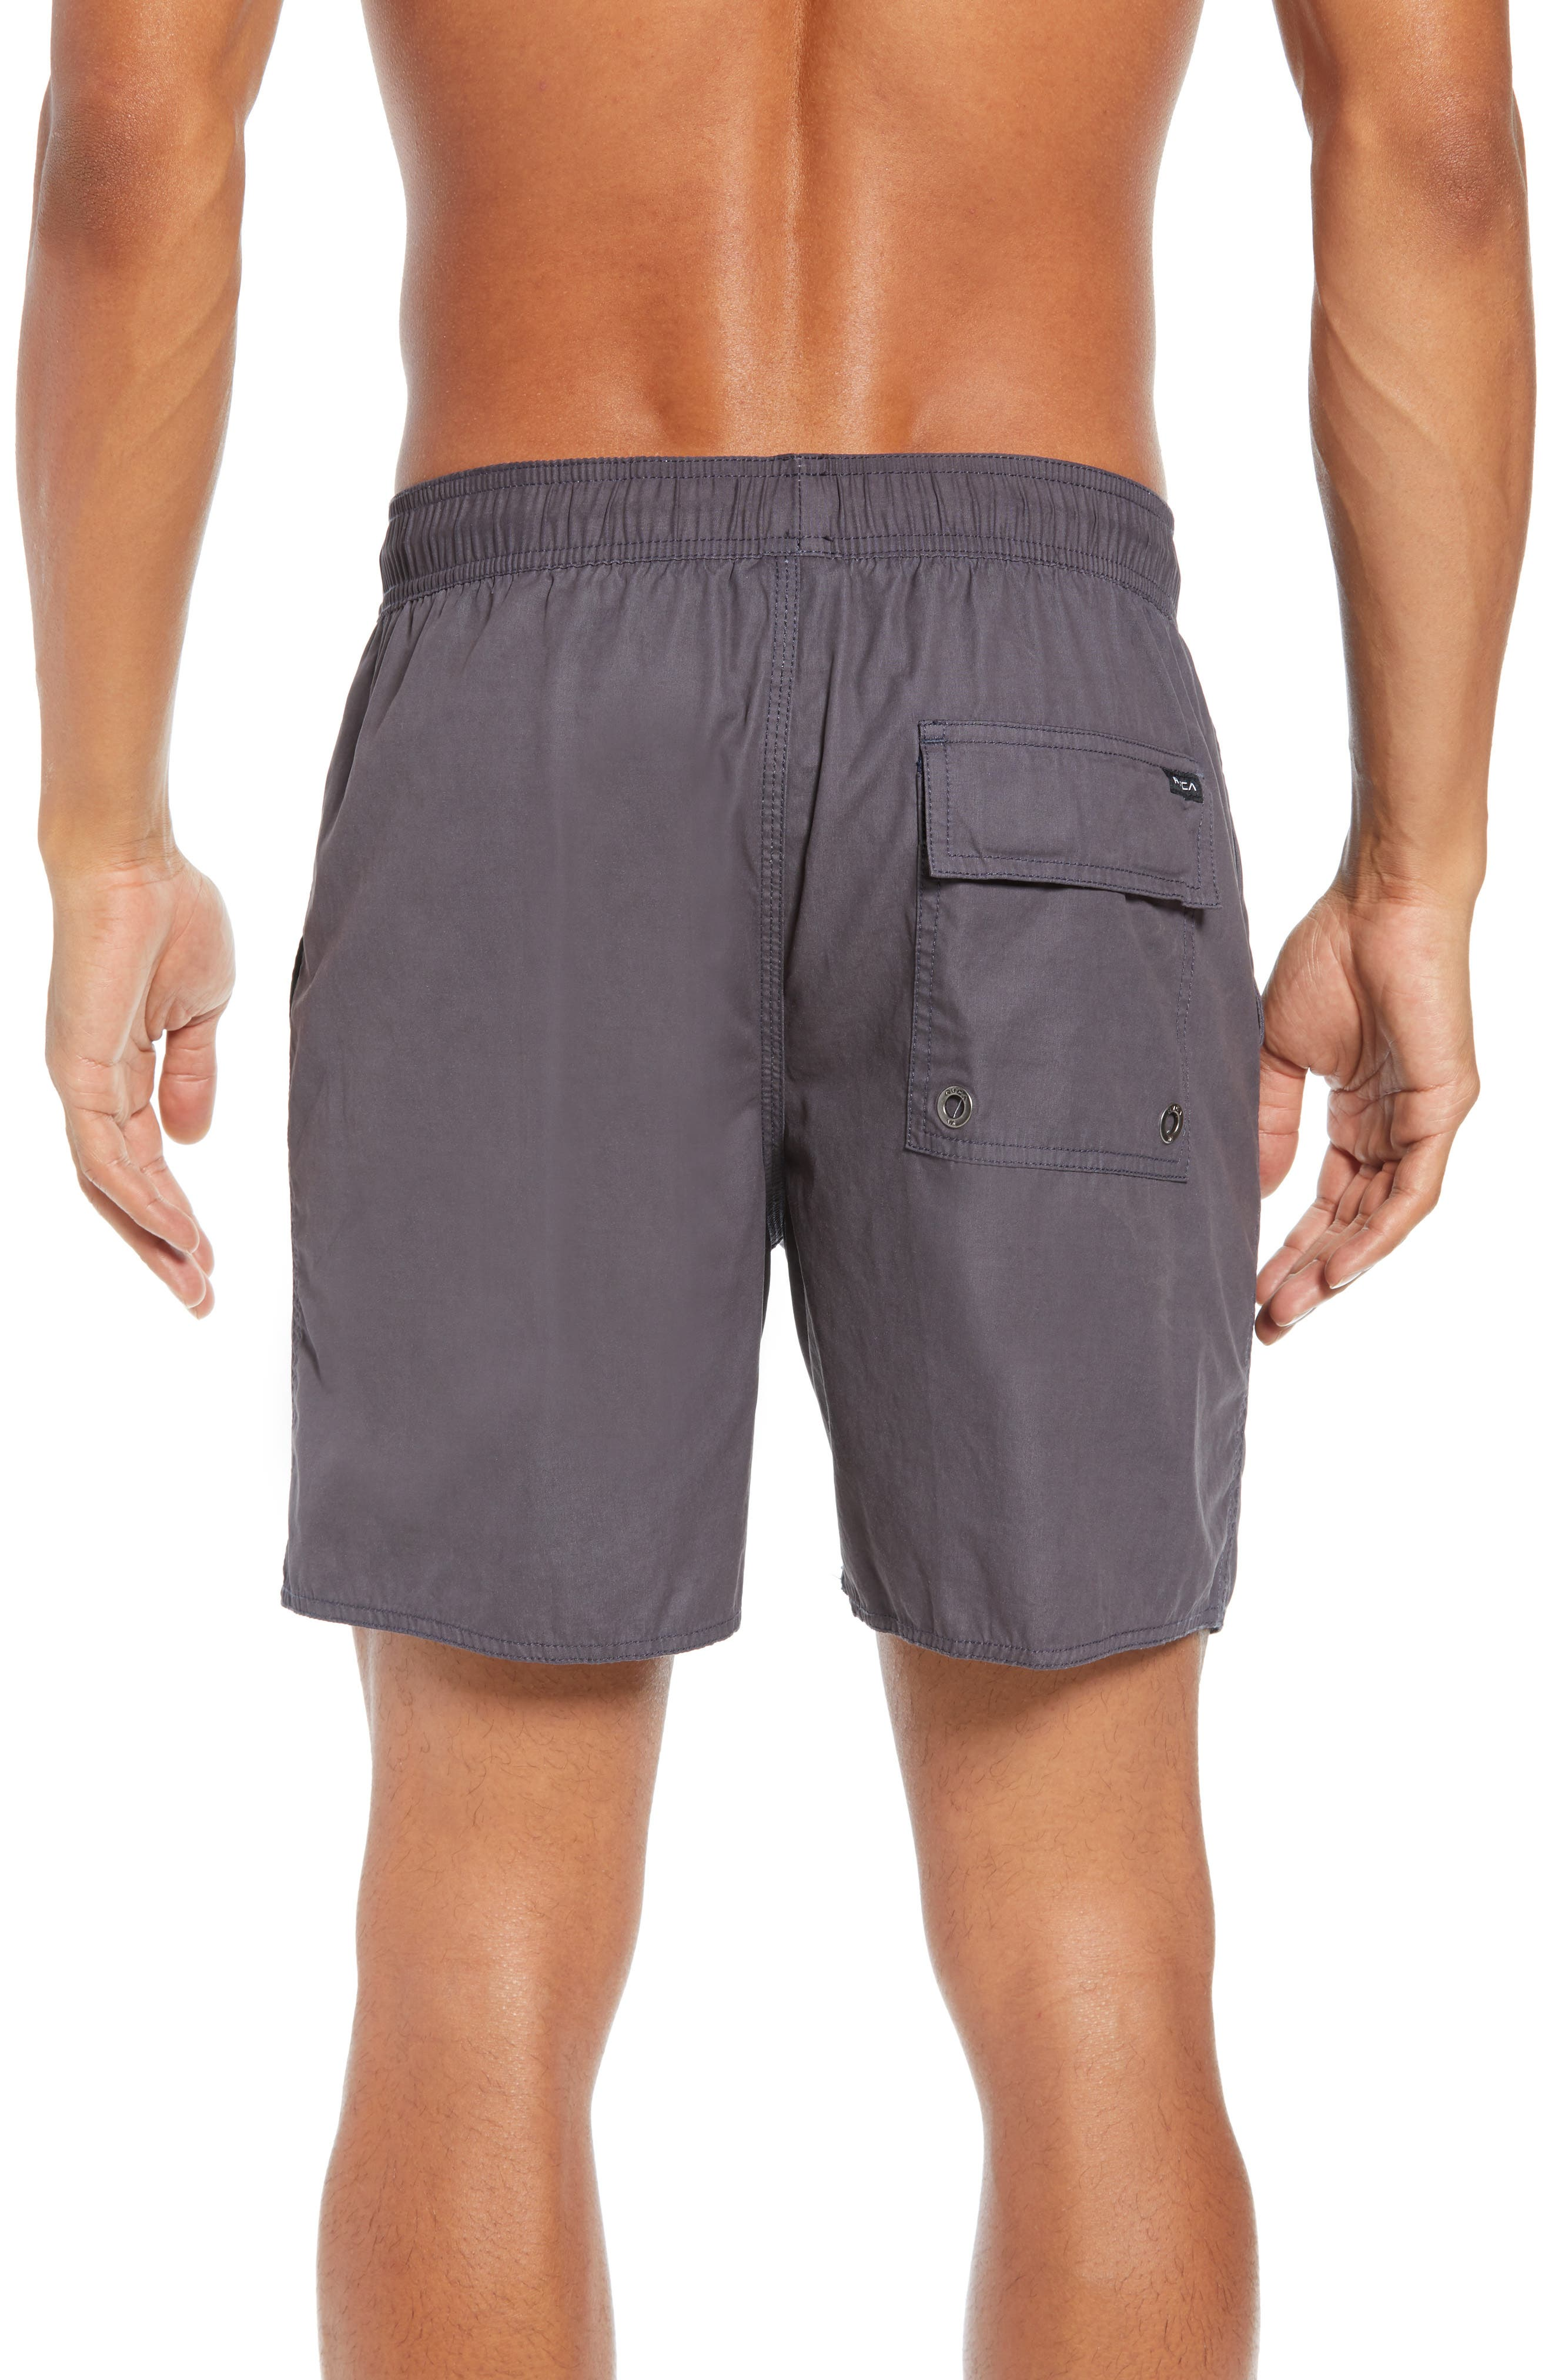 Horton Swim Trunks,                             Alternate thumbnail 2, color,                             OIL GREY